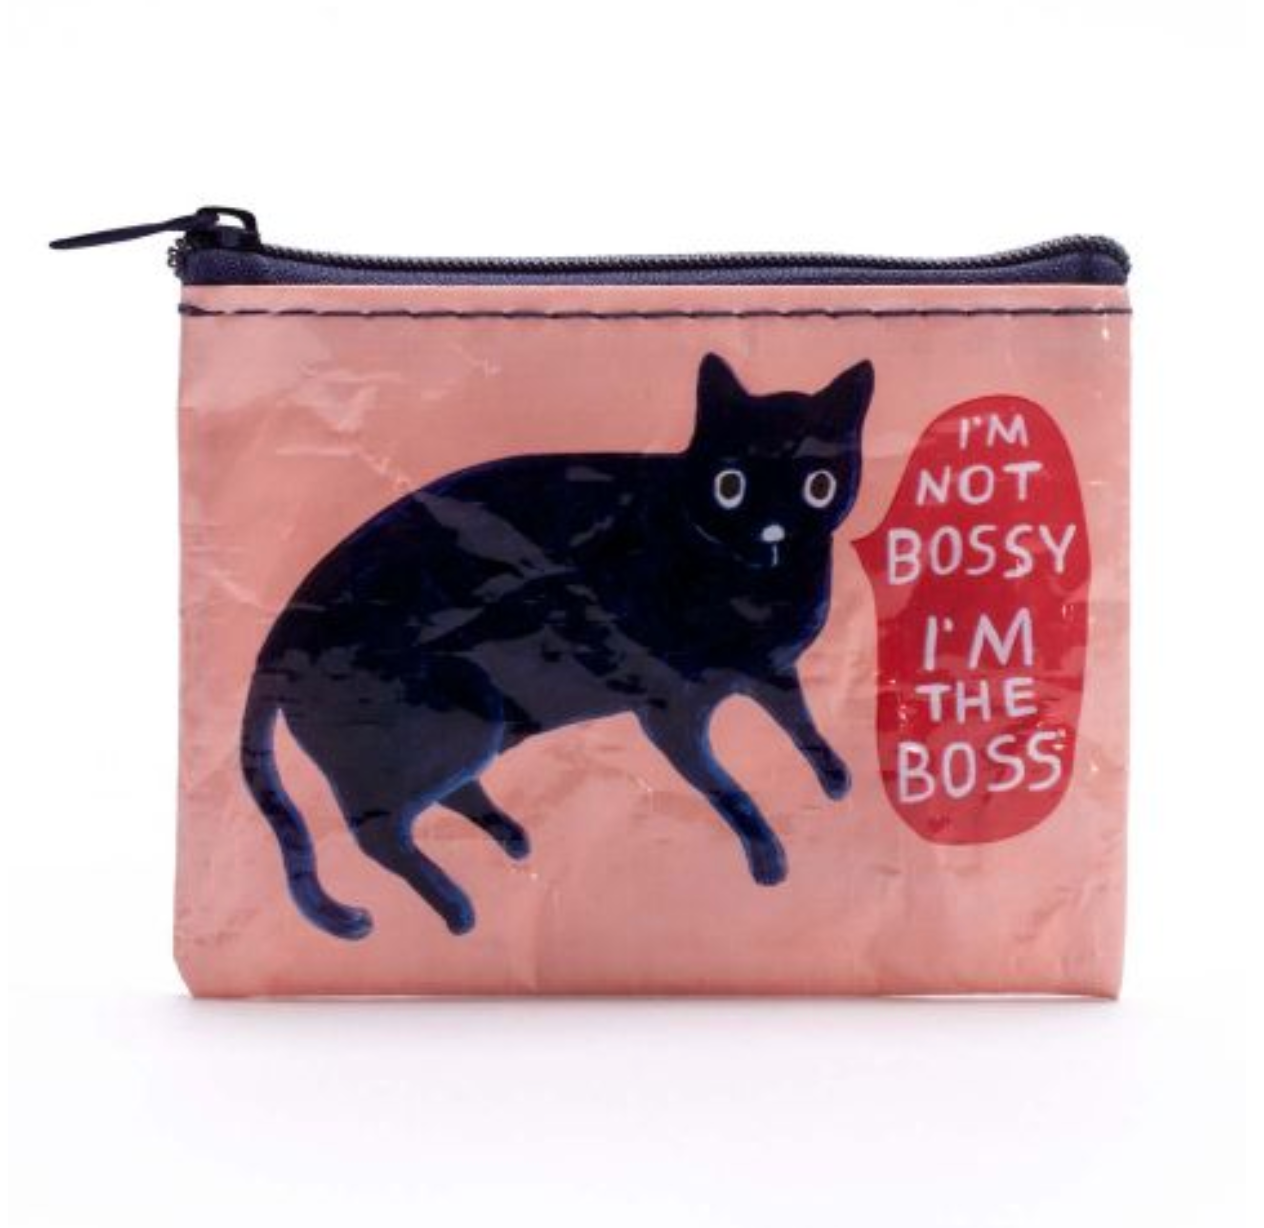 """I'm The Boss"" - Coin Purse"